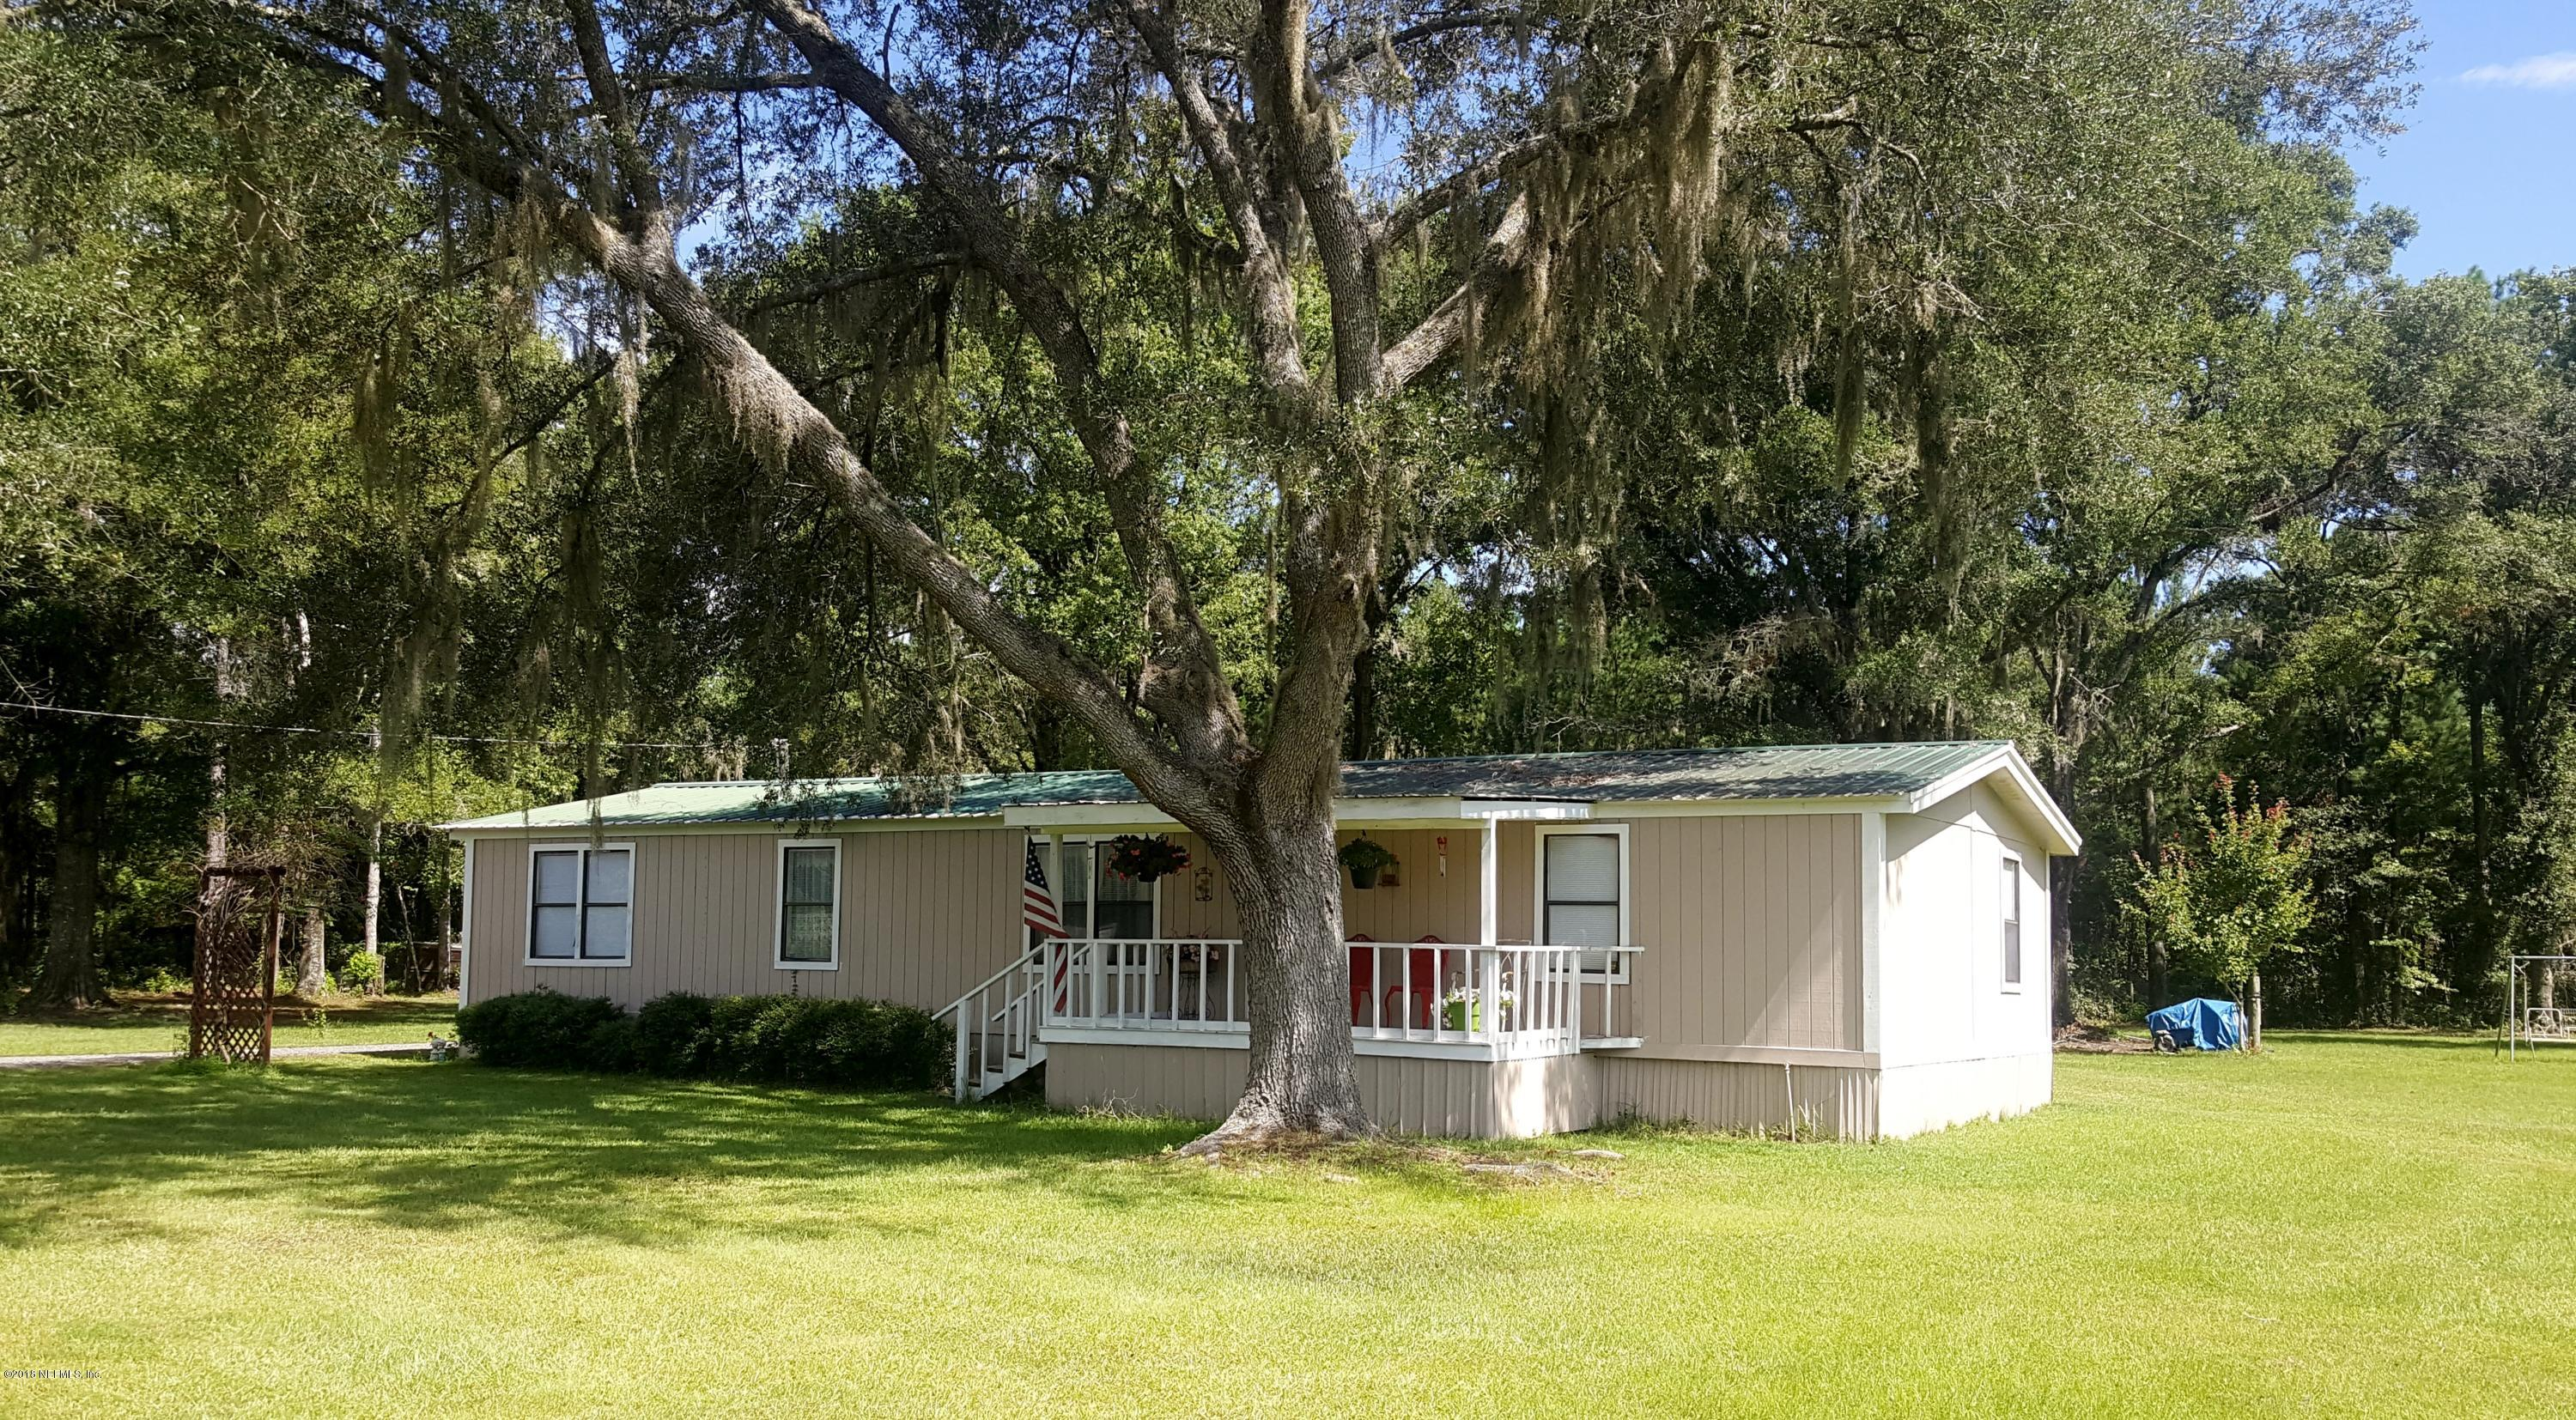 12705 STATE ROAD 100, LAKE BUTLER, FLORIDA 32054, 3 Bedrooms Bedrooms, ,2 BathroomsBathrooms,Residential - mobile home,For sale,STATE ROAD 100,952359